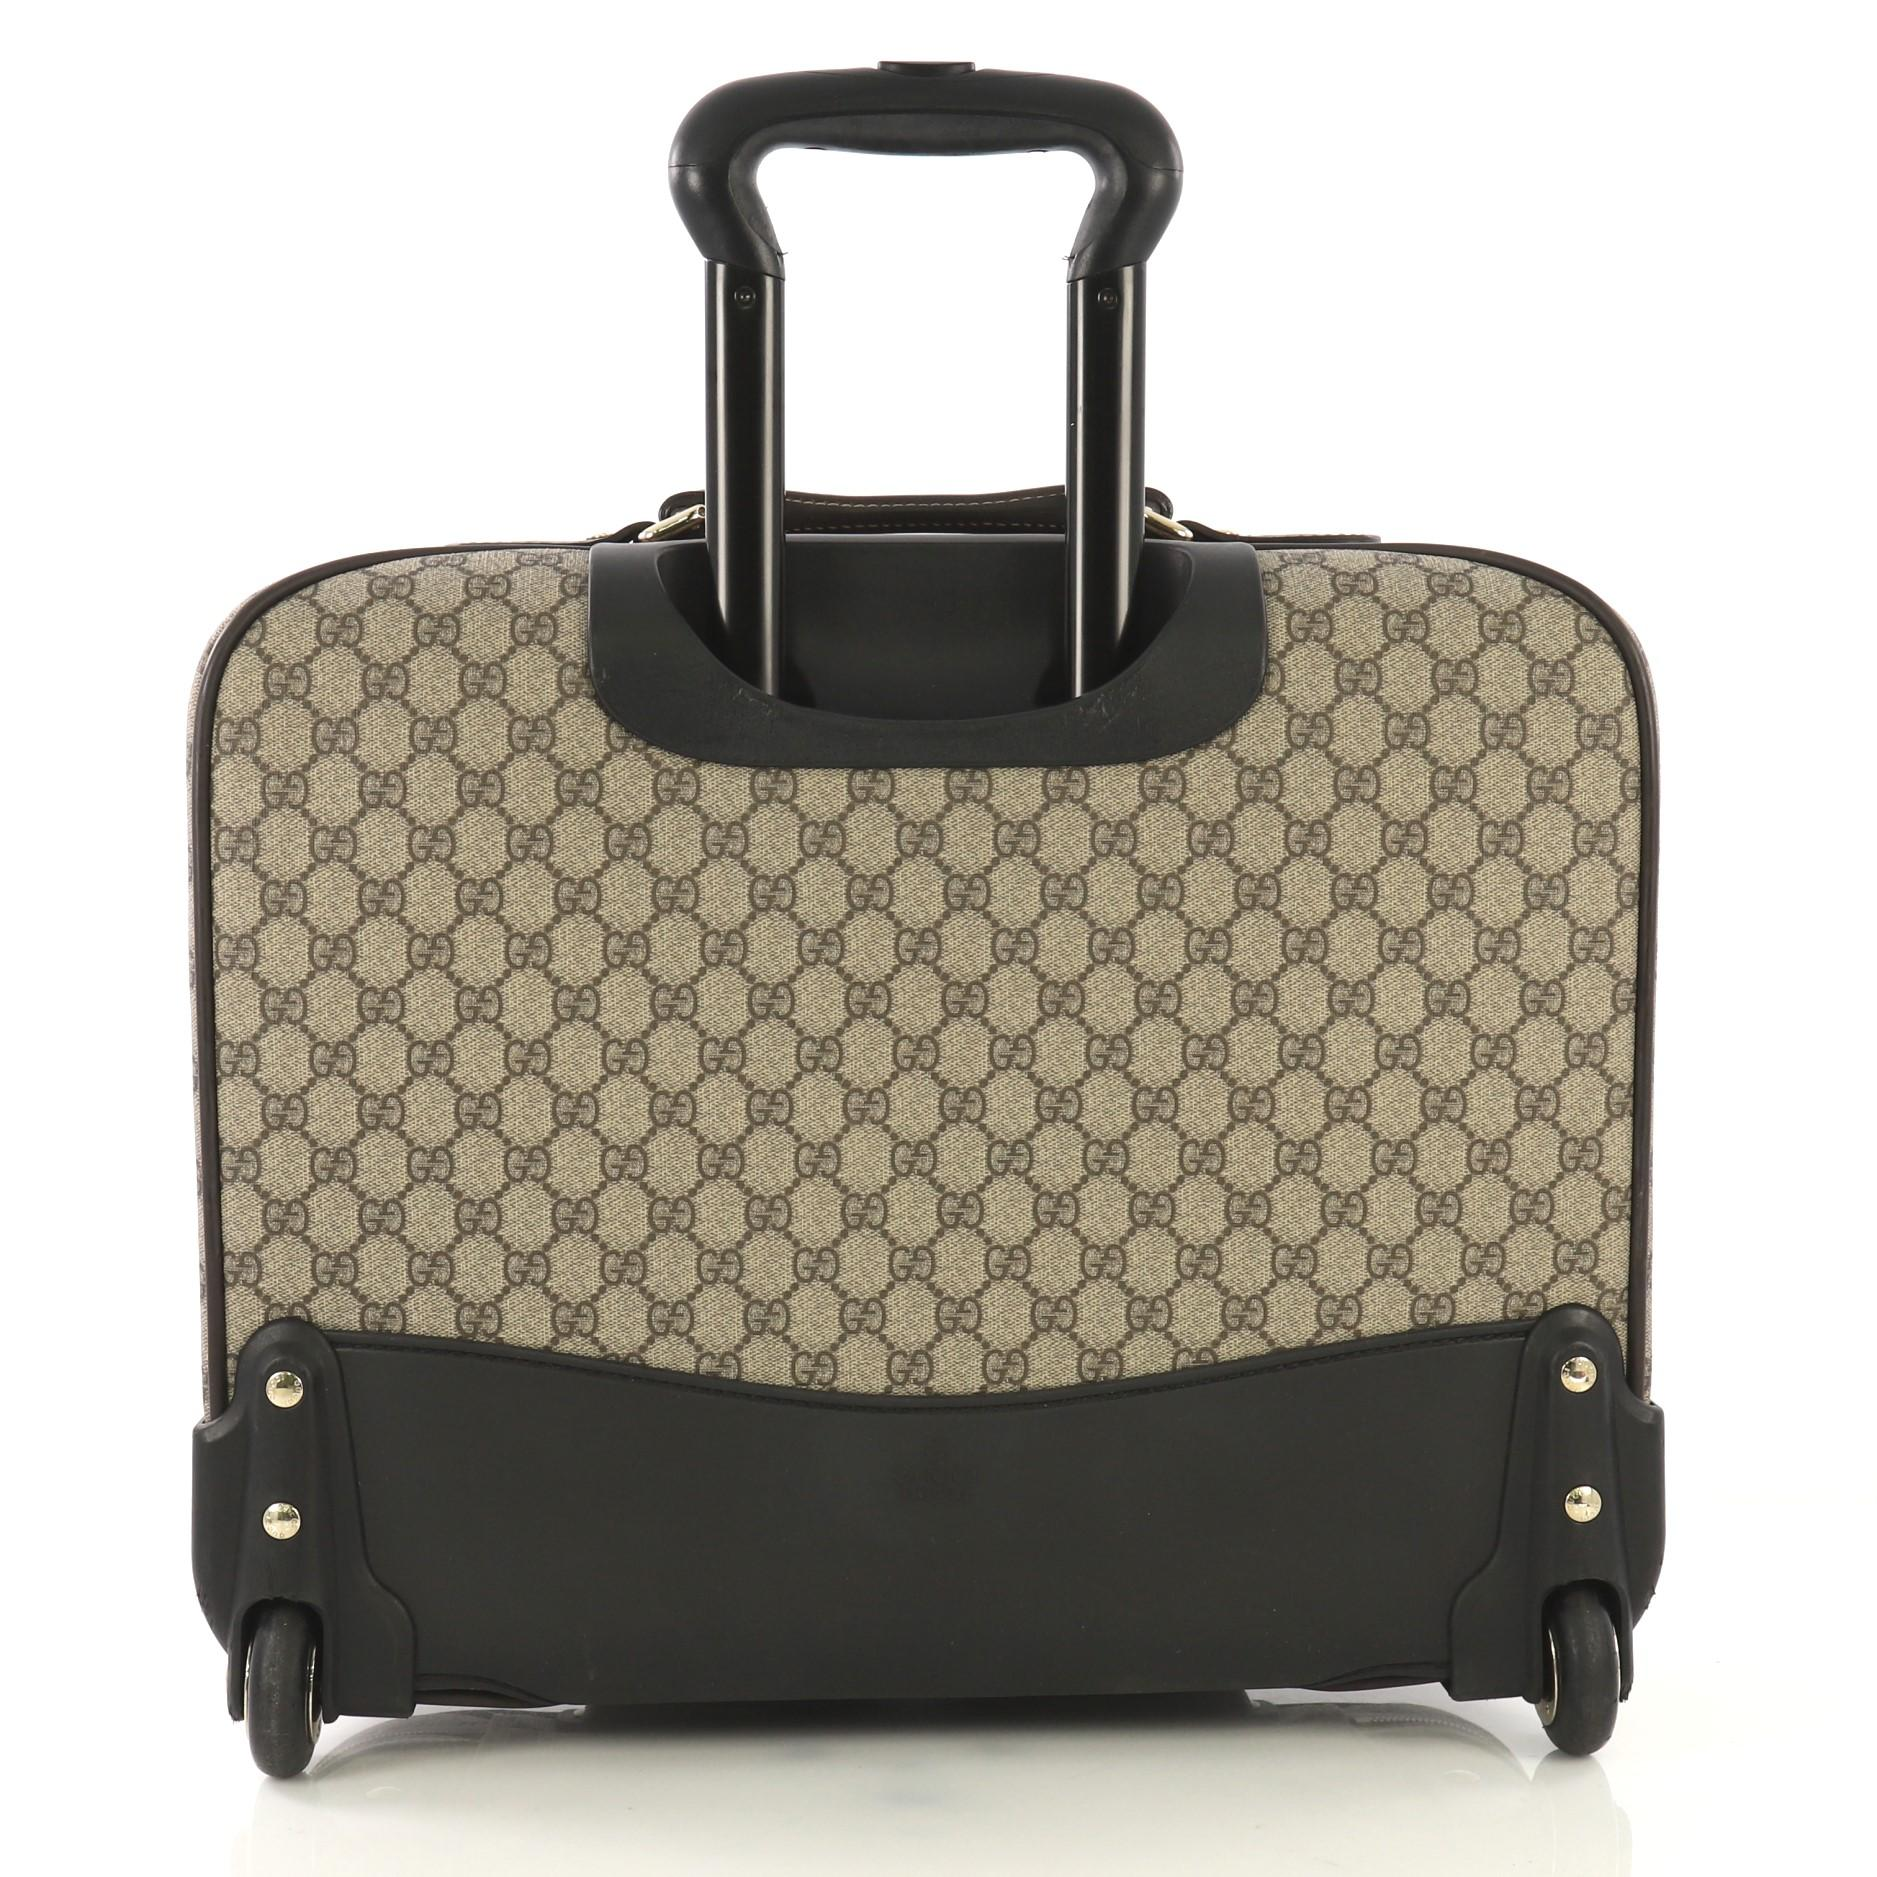 4f1326810 Gucci Carry On Trolley Rolling Luggage GG Coated Canvas With Leather at  1stdibs